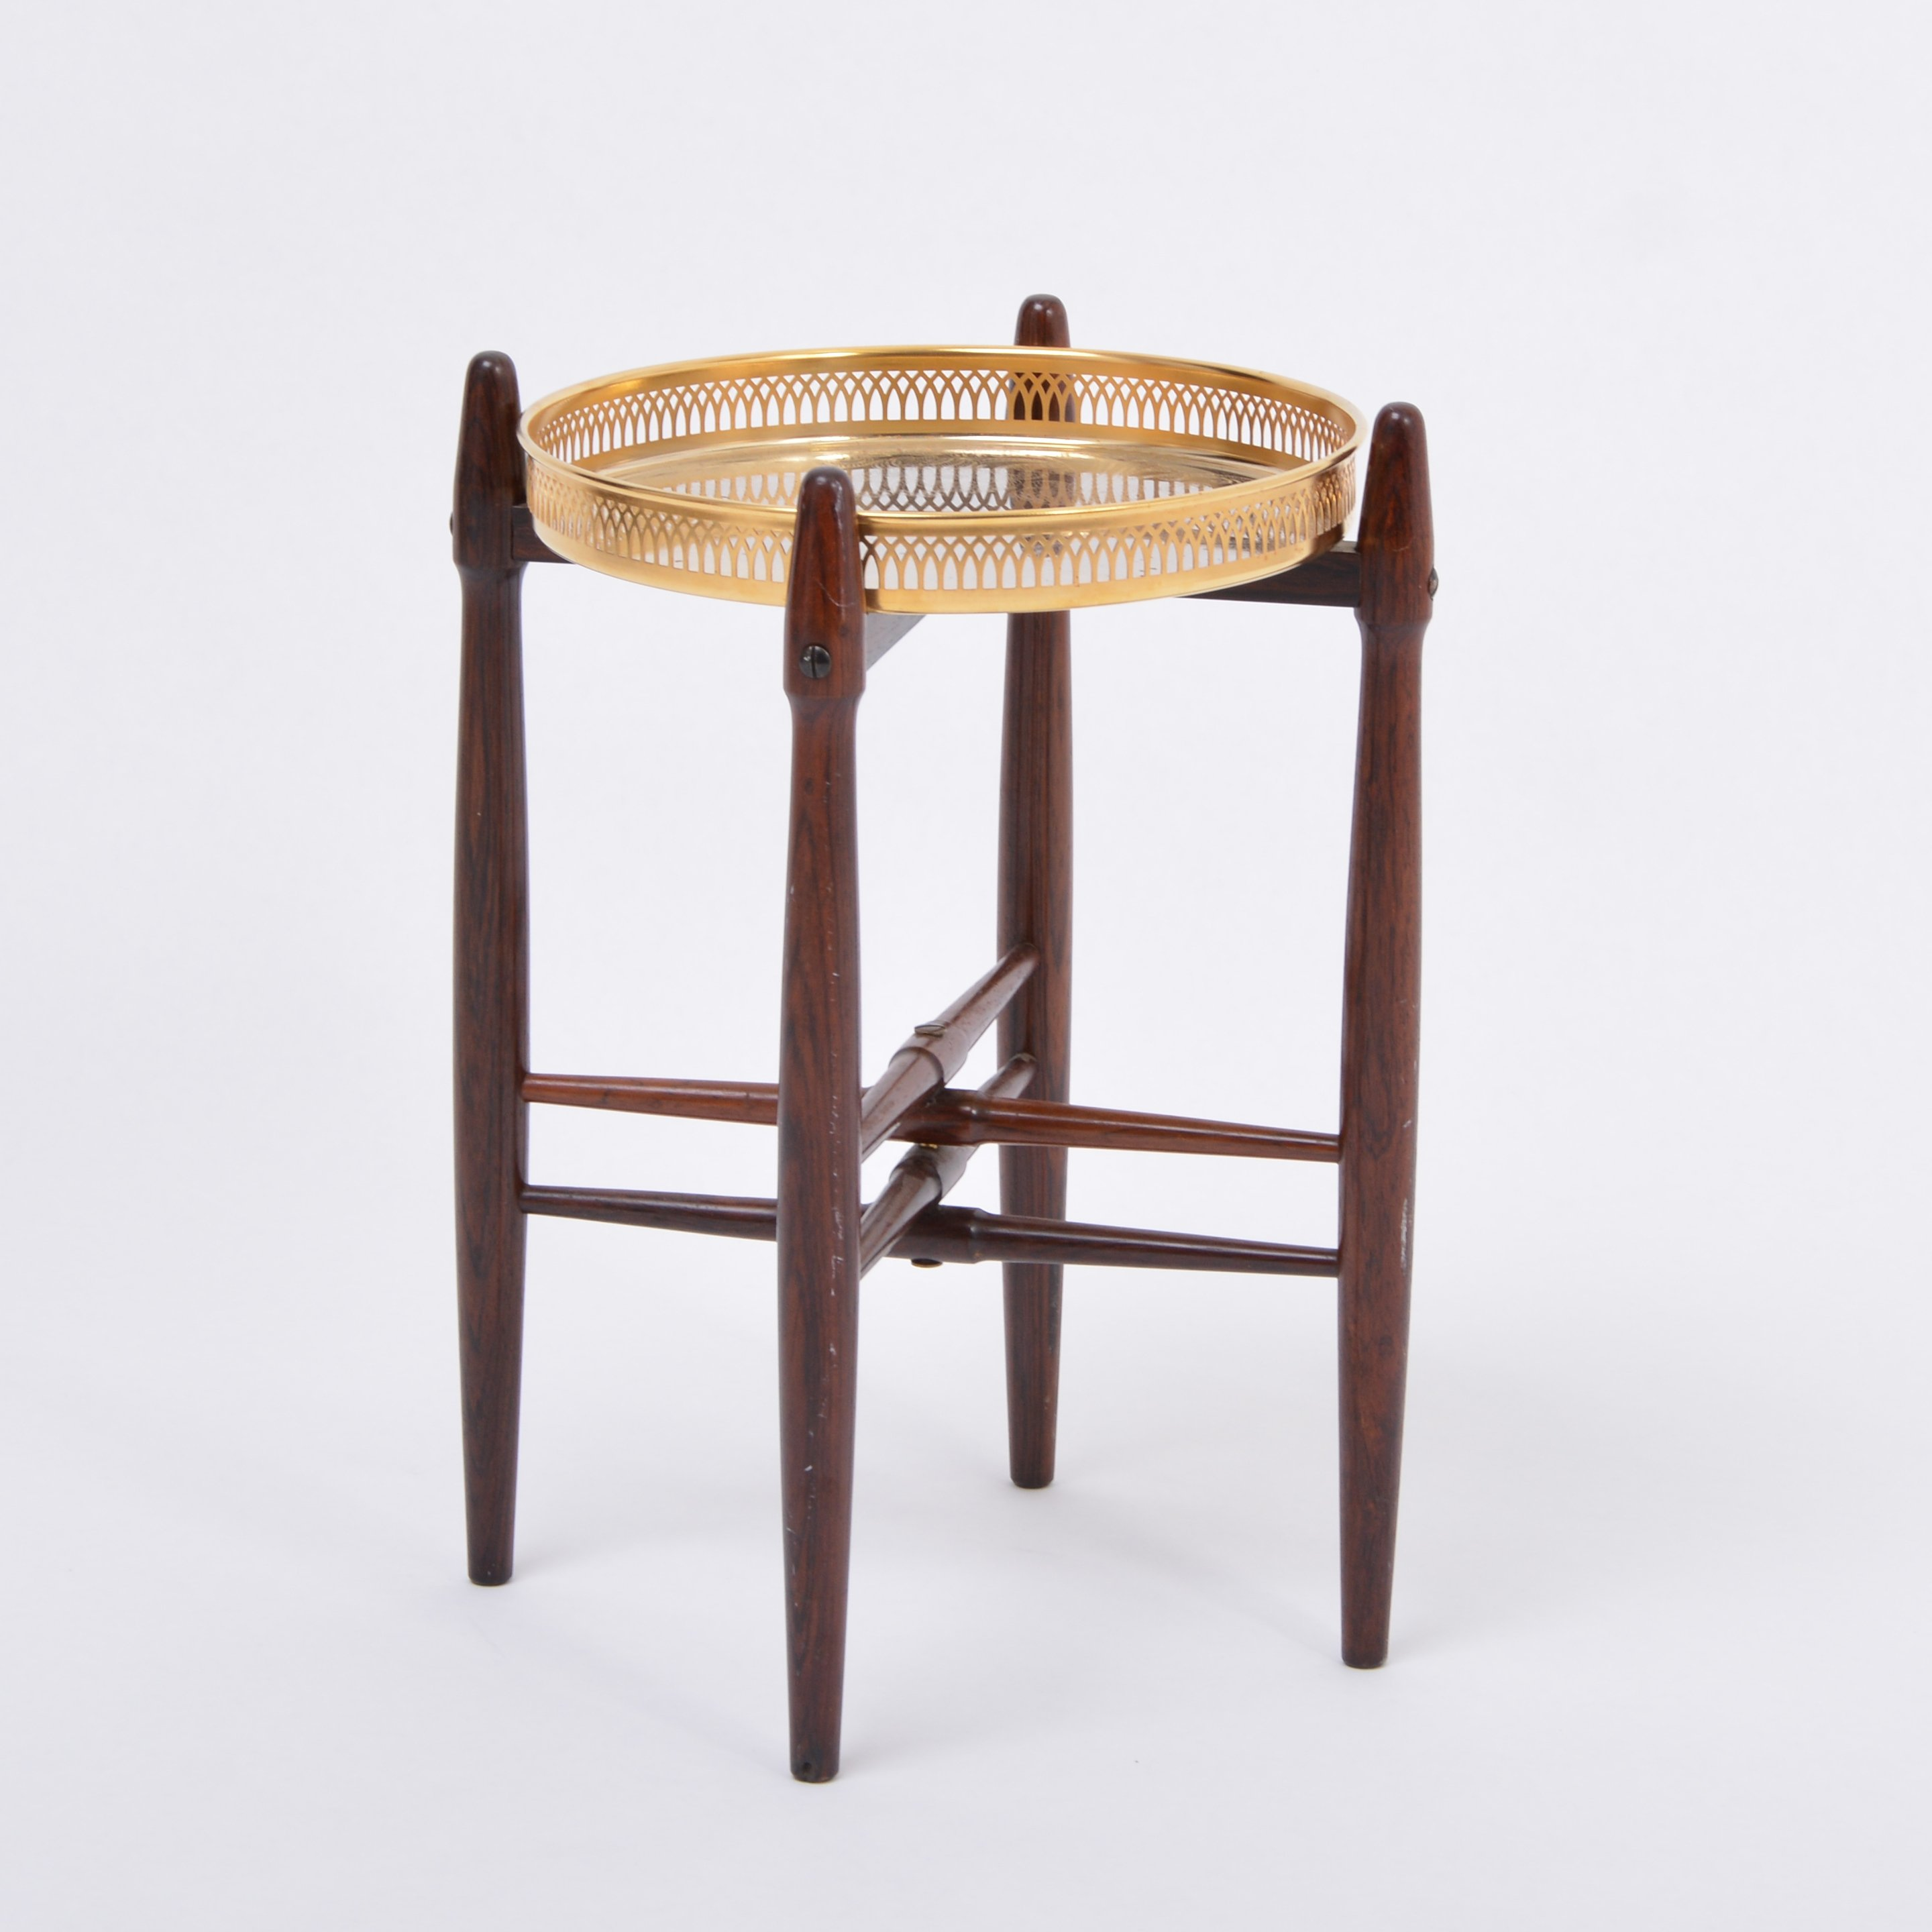 Mid Century Modern Rosewood Side Table With Brass Tray By Poul Hundevad Denmark 1960s 131542